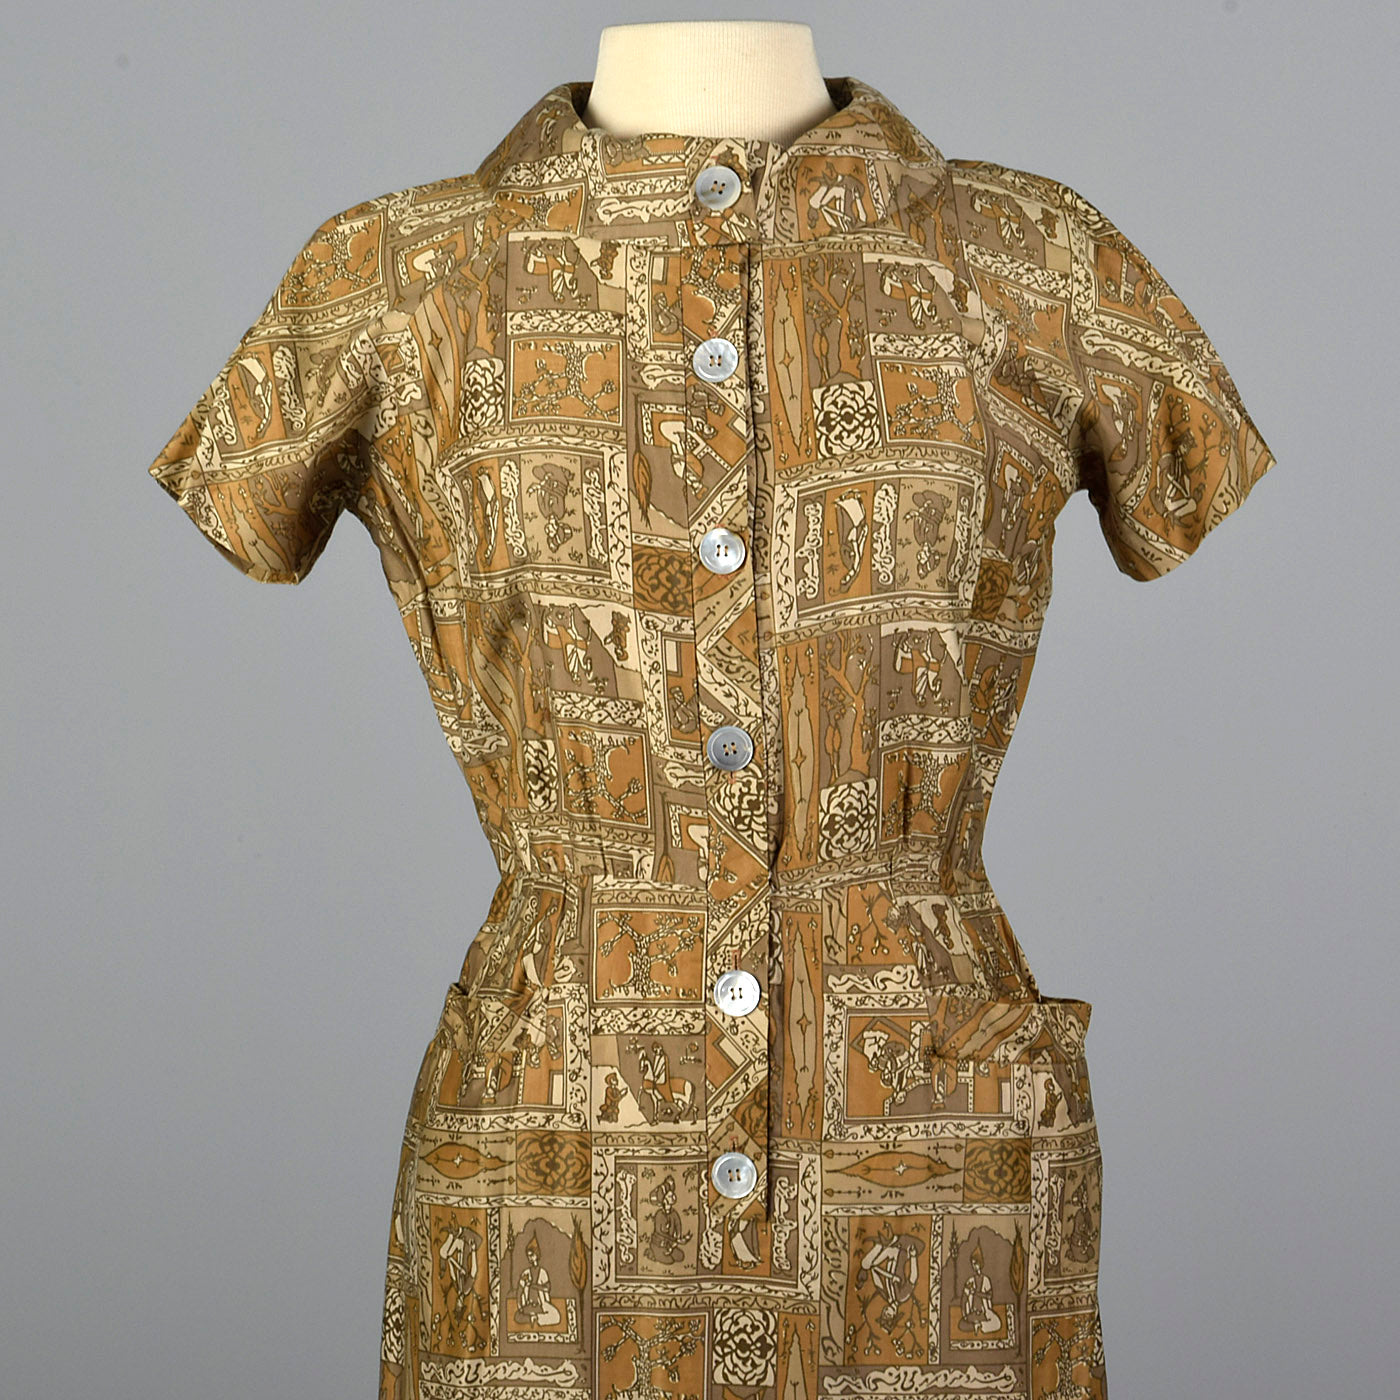 1950s Novelty Print Cotton Dress